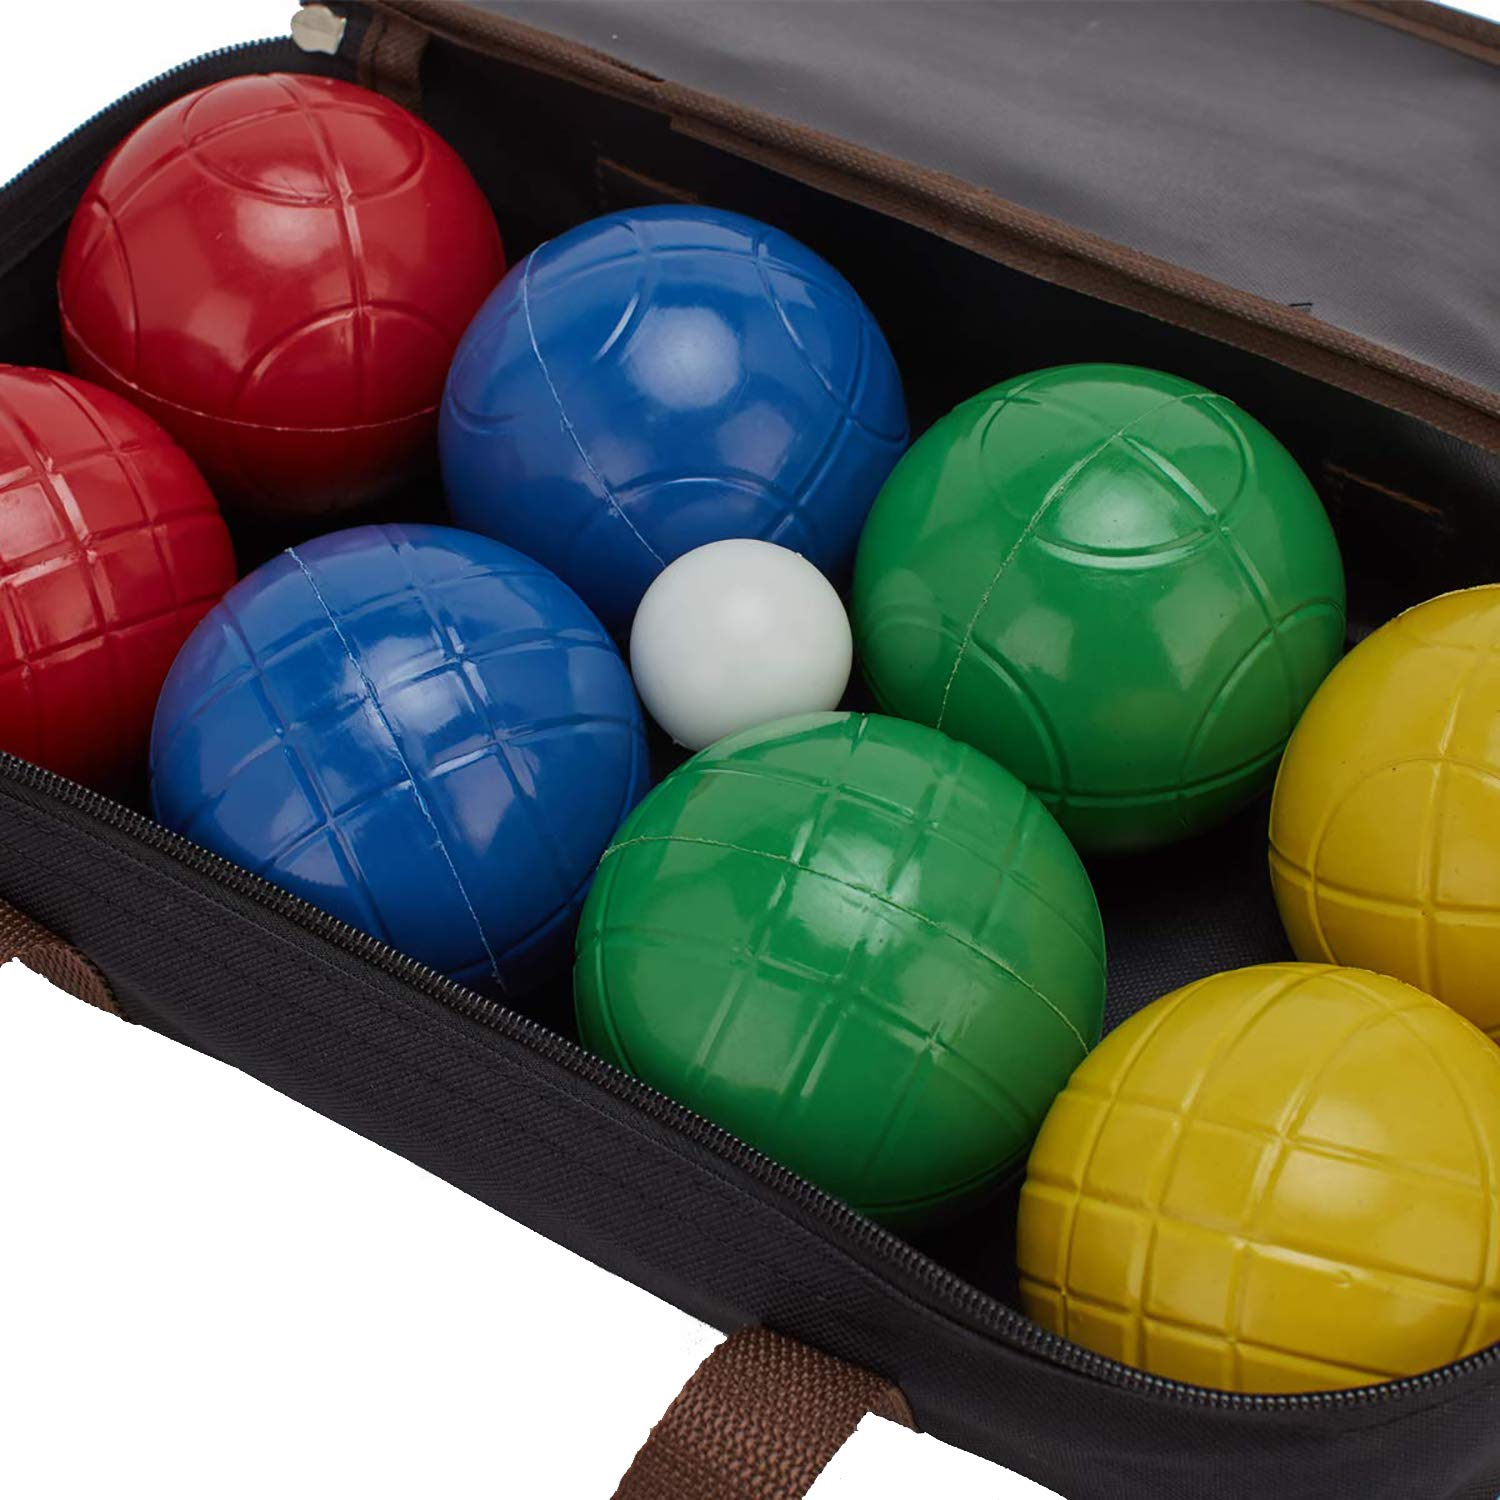 LAWN TIME 90mm Bocce Ball Set | Includes 8 Recreational Plastic Balls, 1 Pallino (Jack Ball) and 1 Nylon Zip-Up Carrying Case | Beach, Backyard or Outdoor Party Game - Family Fun for All Ages by LAWN TIME (Image #5)